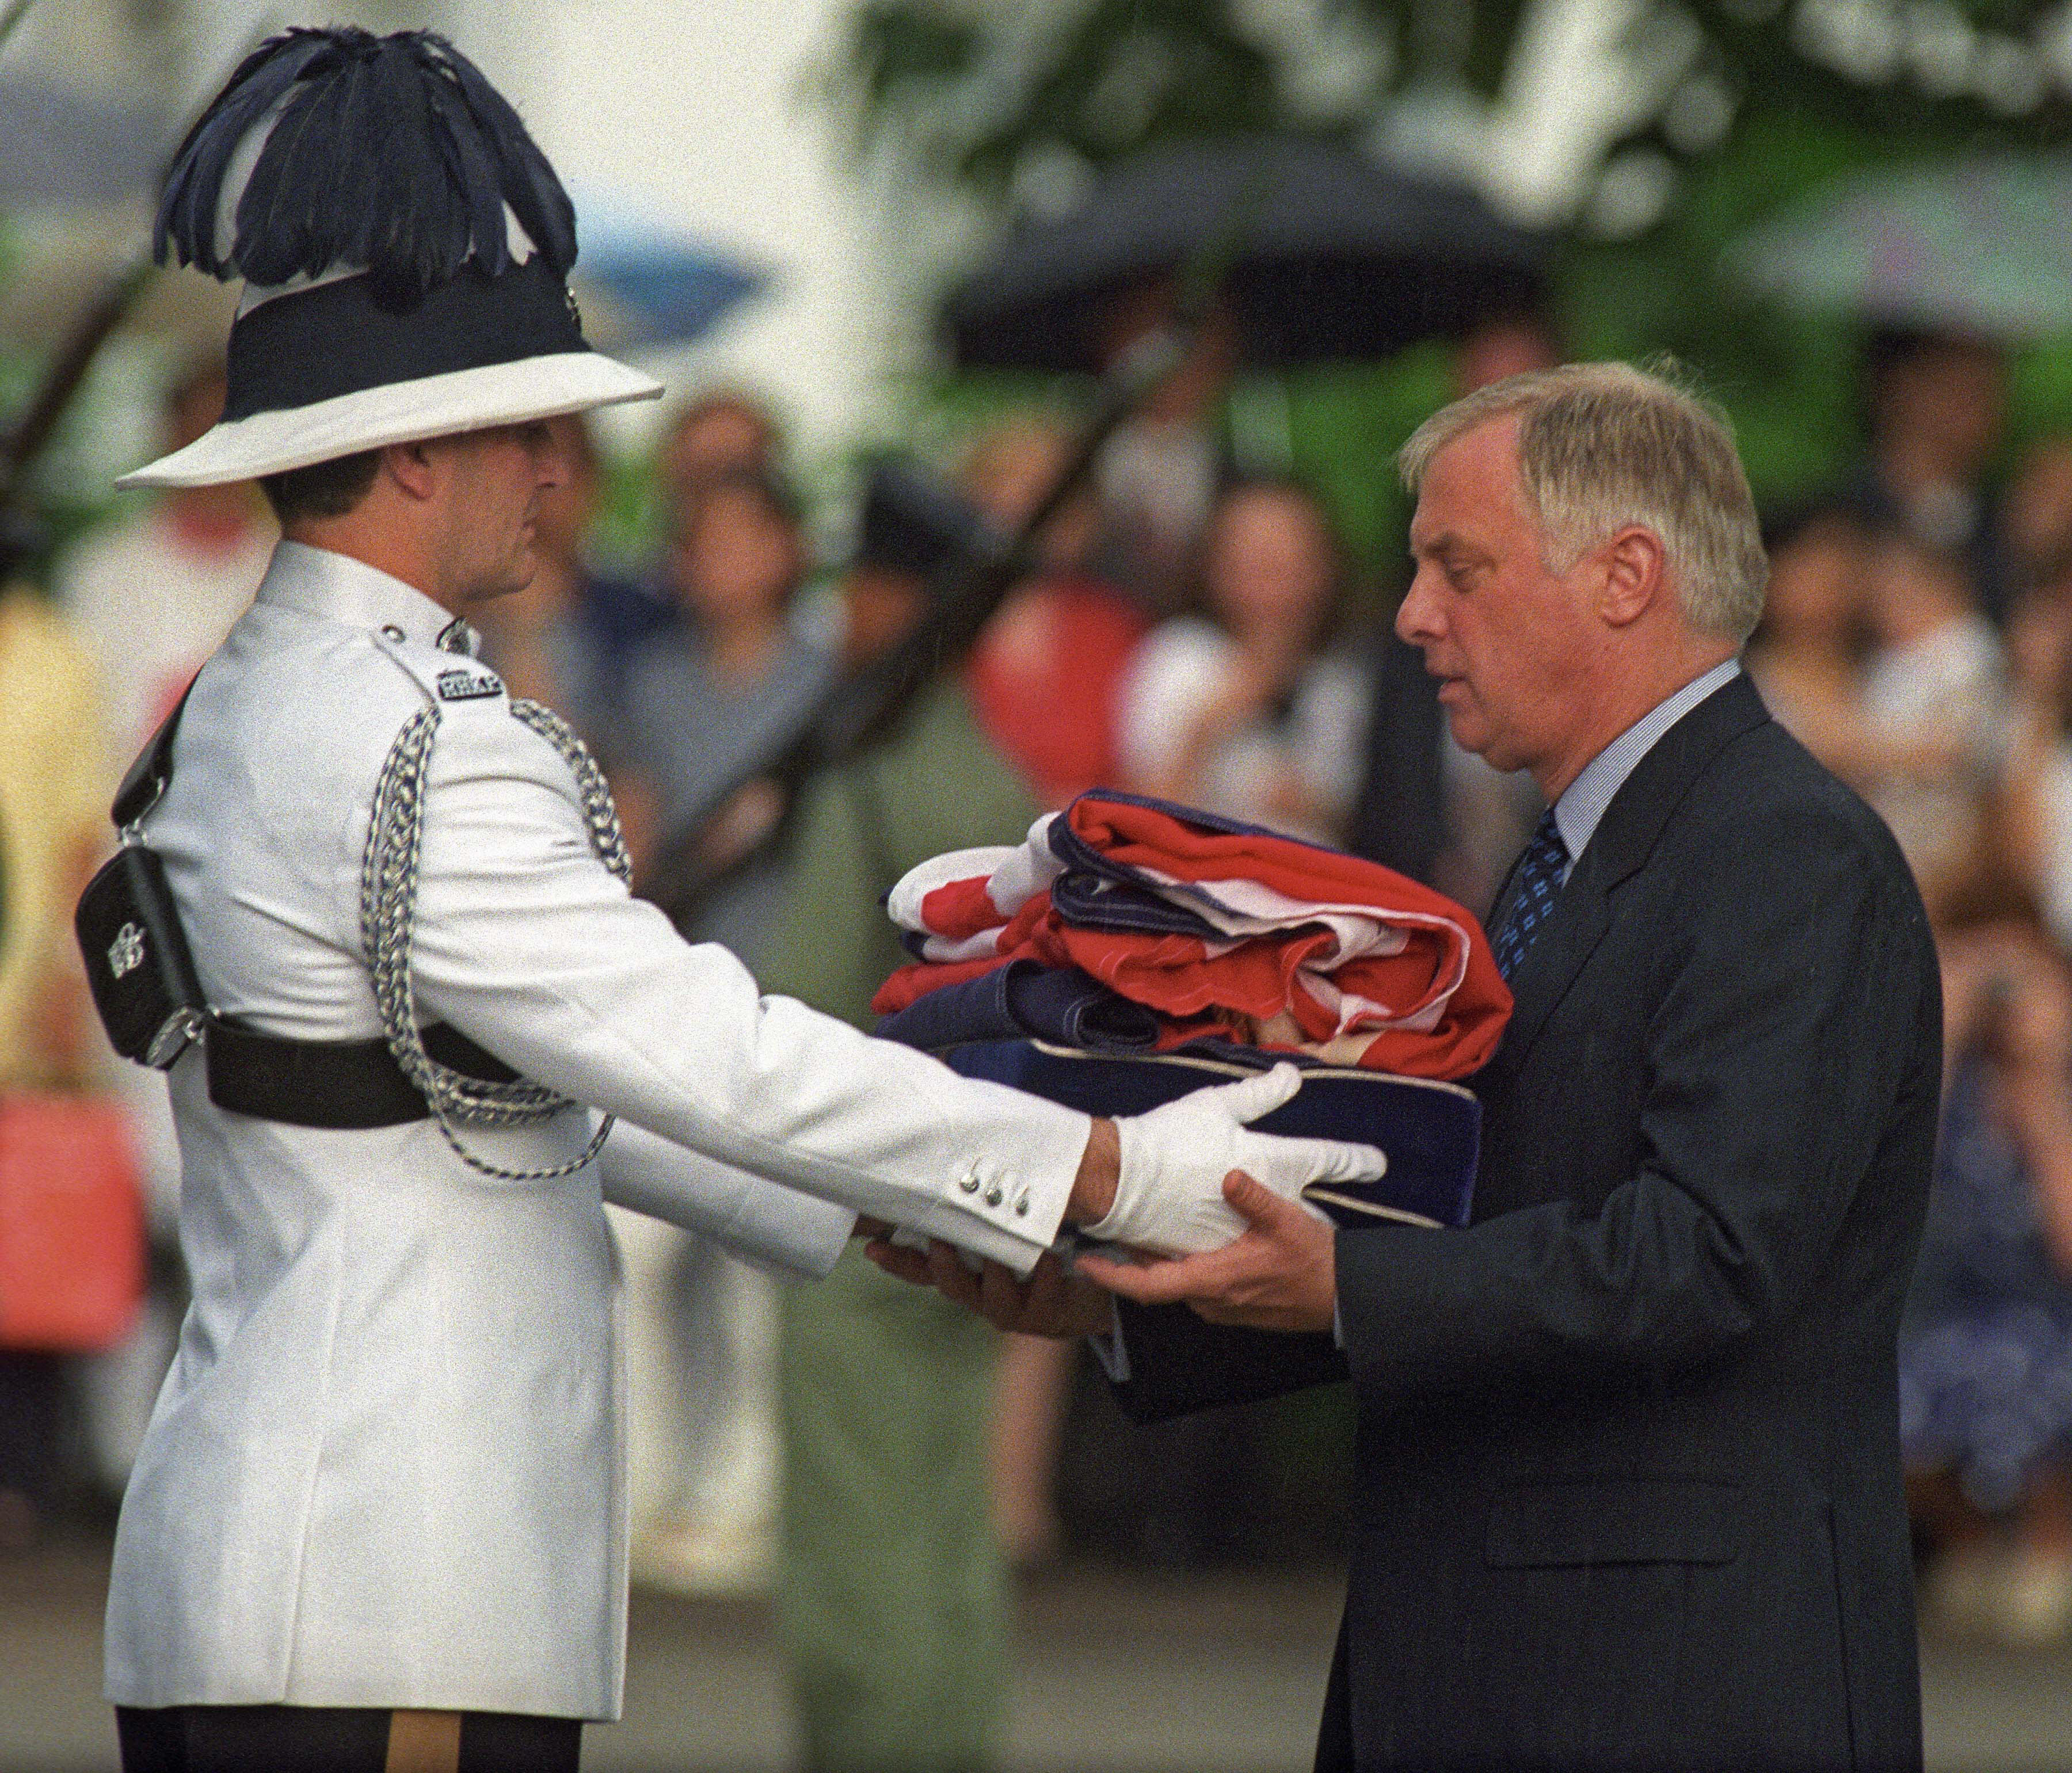 Chris Patten (R), the 28th and last governor of colonial Hong Kong, receives the Union Jack flag after is was lowered for the last time at Government House - the governor's official residence - during a farewell ceremony in Hong Kong, 30 June 1997, just hours prior to the end of some 156 years of British colonial rule as the territory returns to Chinese control.